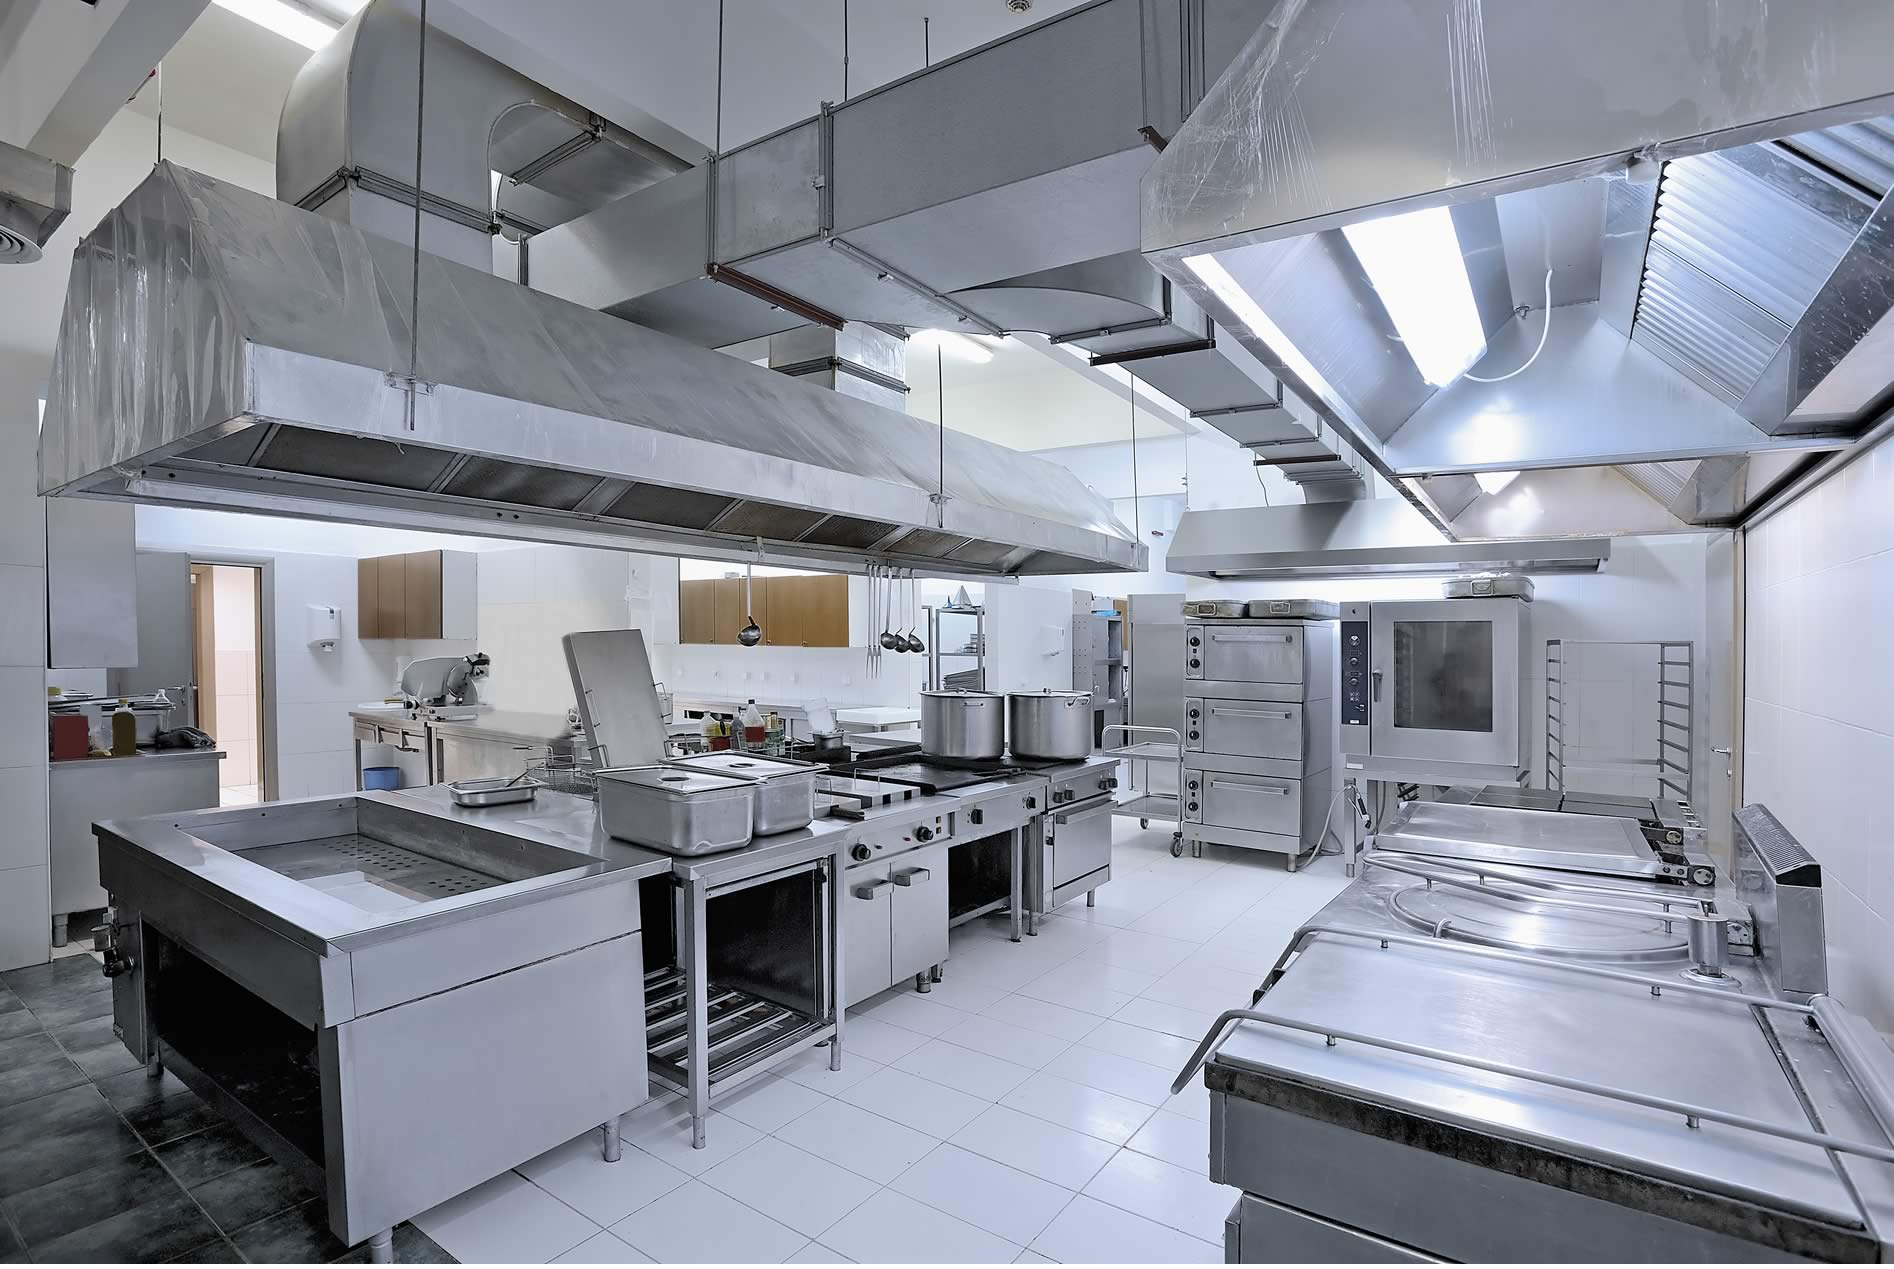 commercial stainless steel kitchens for schools